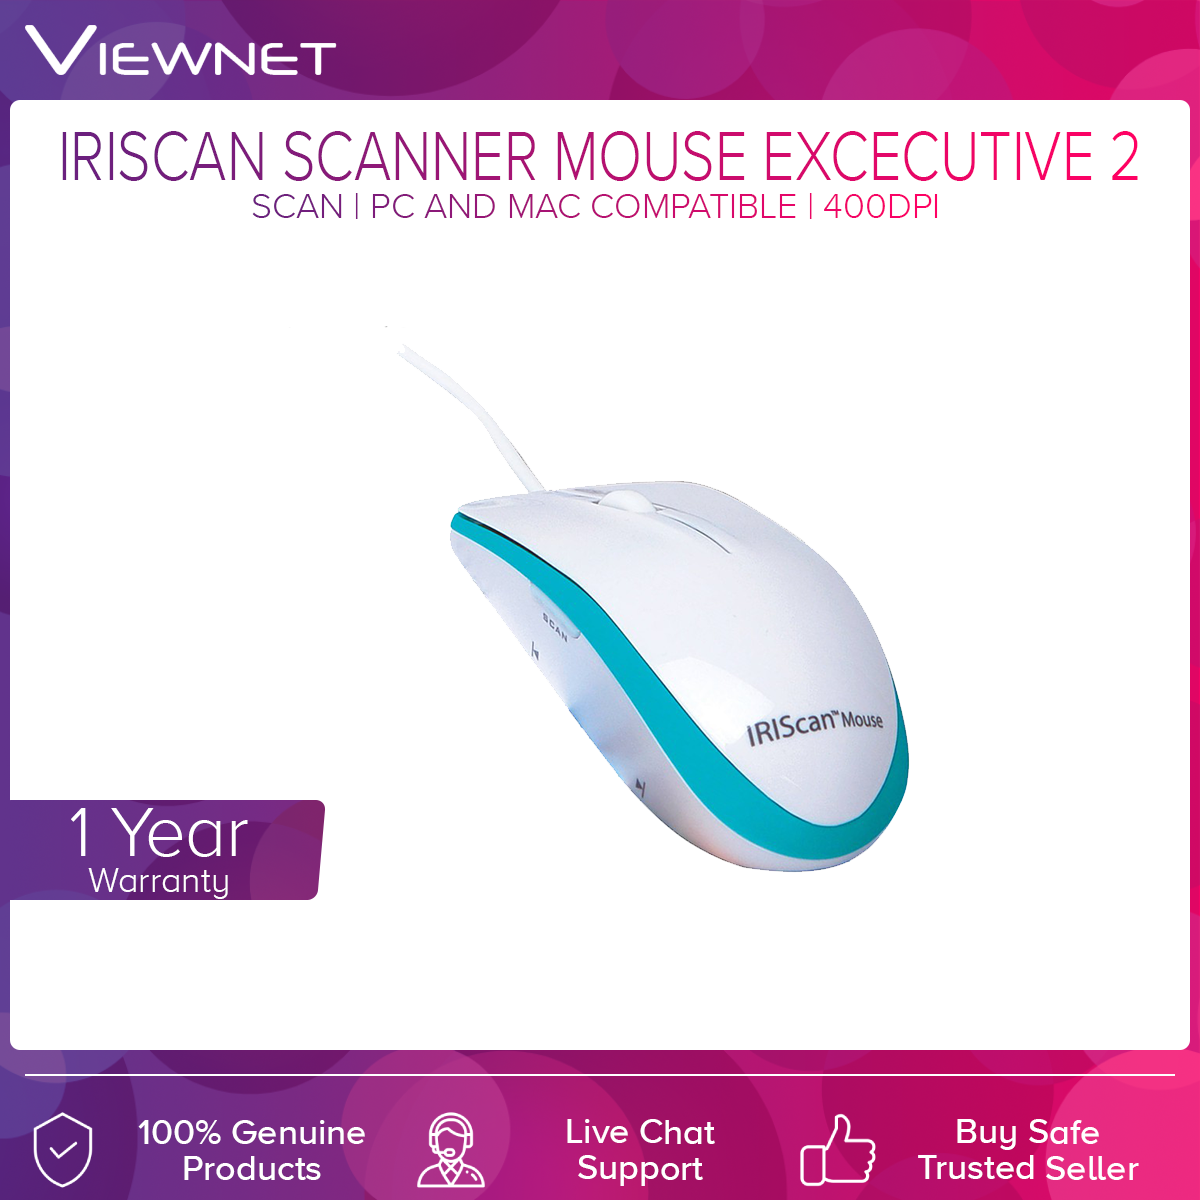 IRIScan Scanner Mouse Excecutive 2 (Scan) with 400DPI, PC and Mac compatible